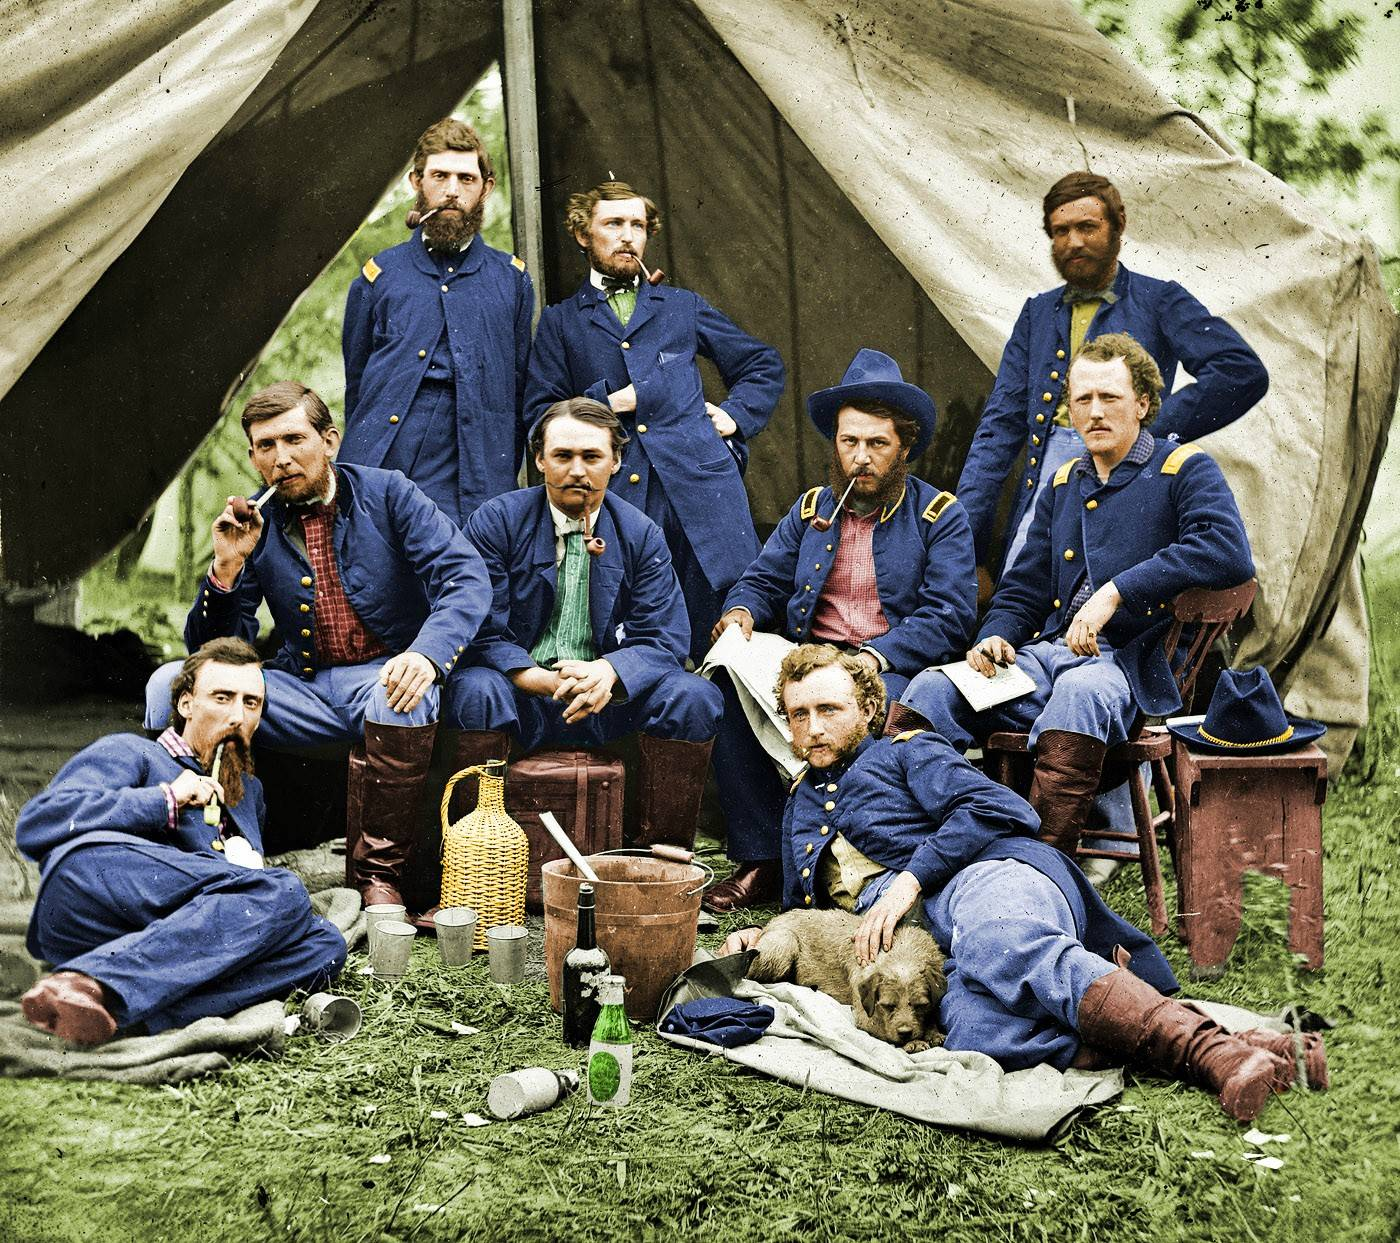 1862-COLORIZED-Lt-Custer-and-Union-Troops-1862.jpg